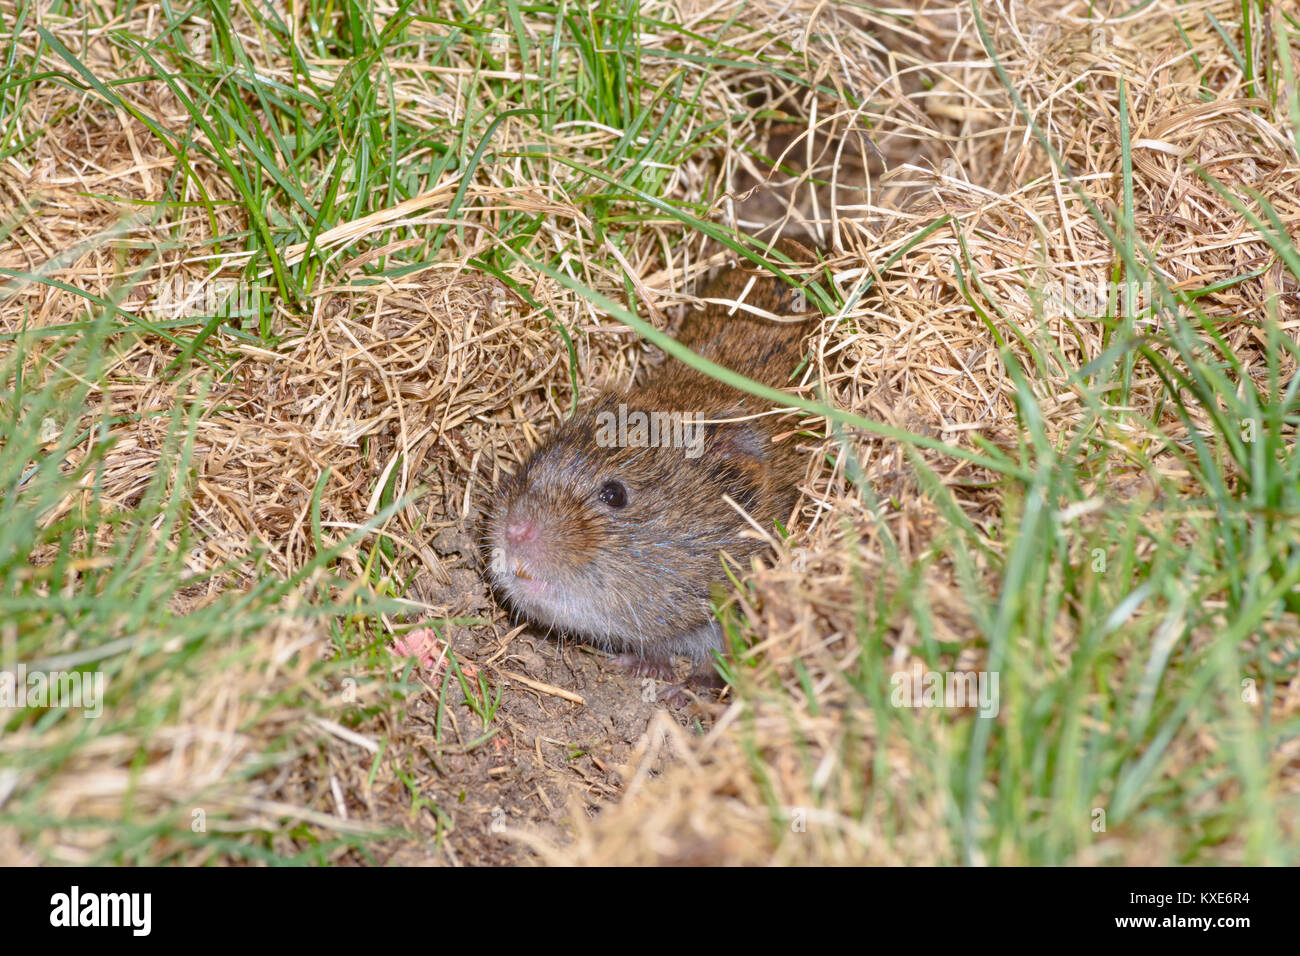 Meadow Vole carefully peering out of it's grassy runway, Castle Rock Colorado US - Stock Image